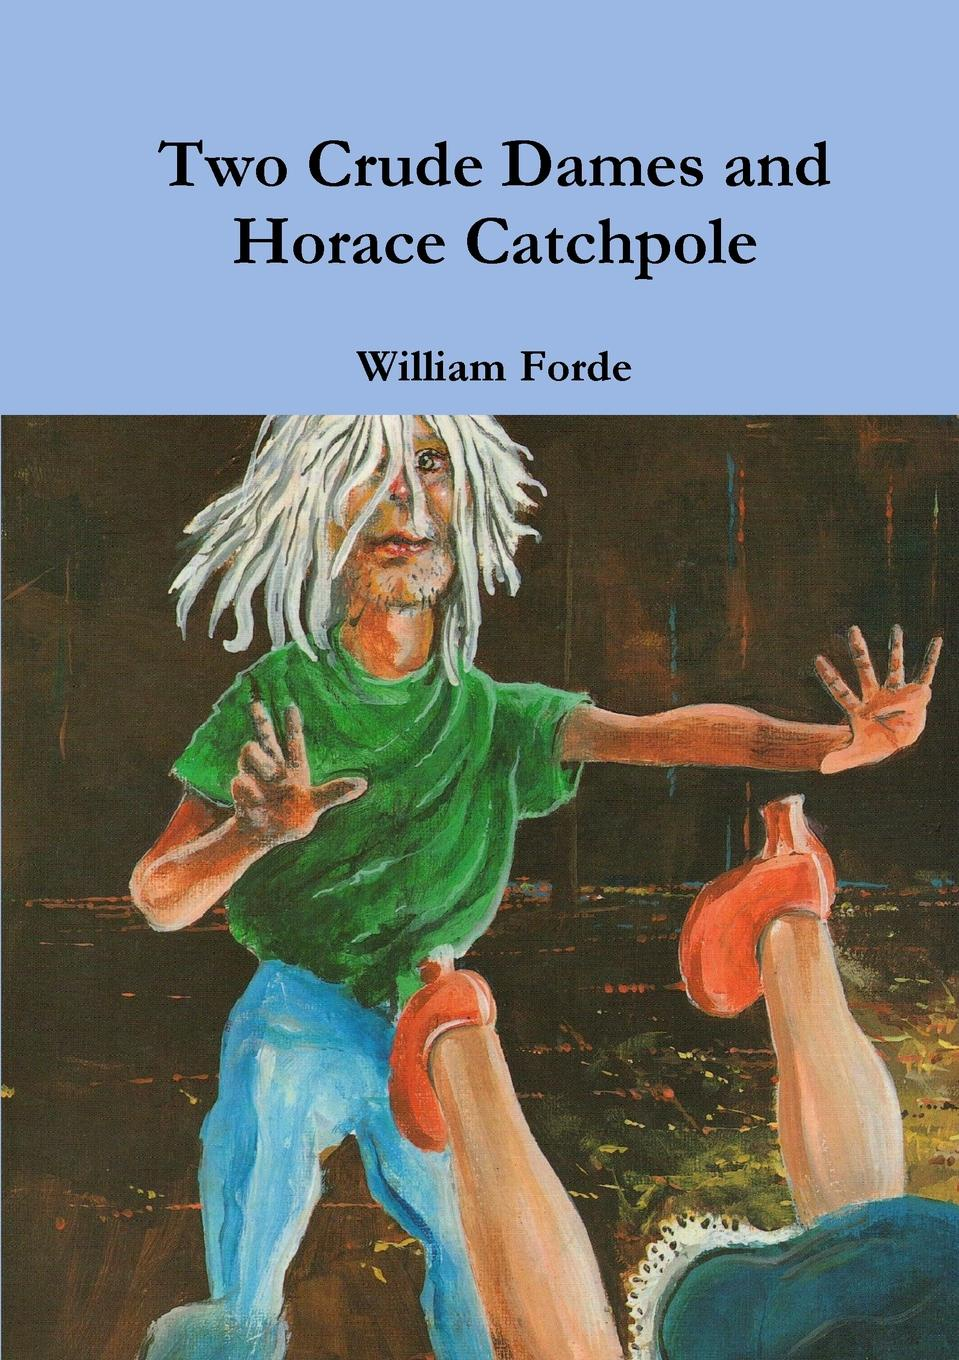 Two Crude Dames and Horace Catchpole Horace Catchpole and Two Crude Dames is one of my most favourite...